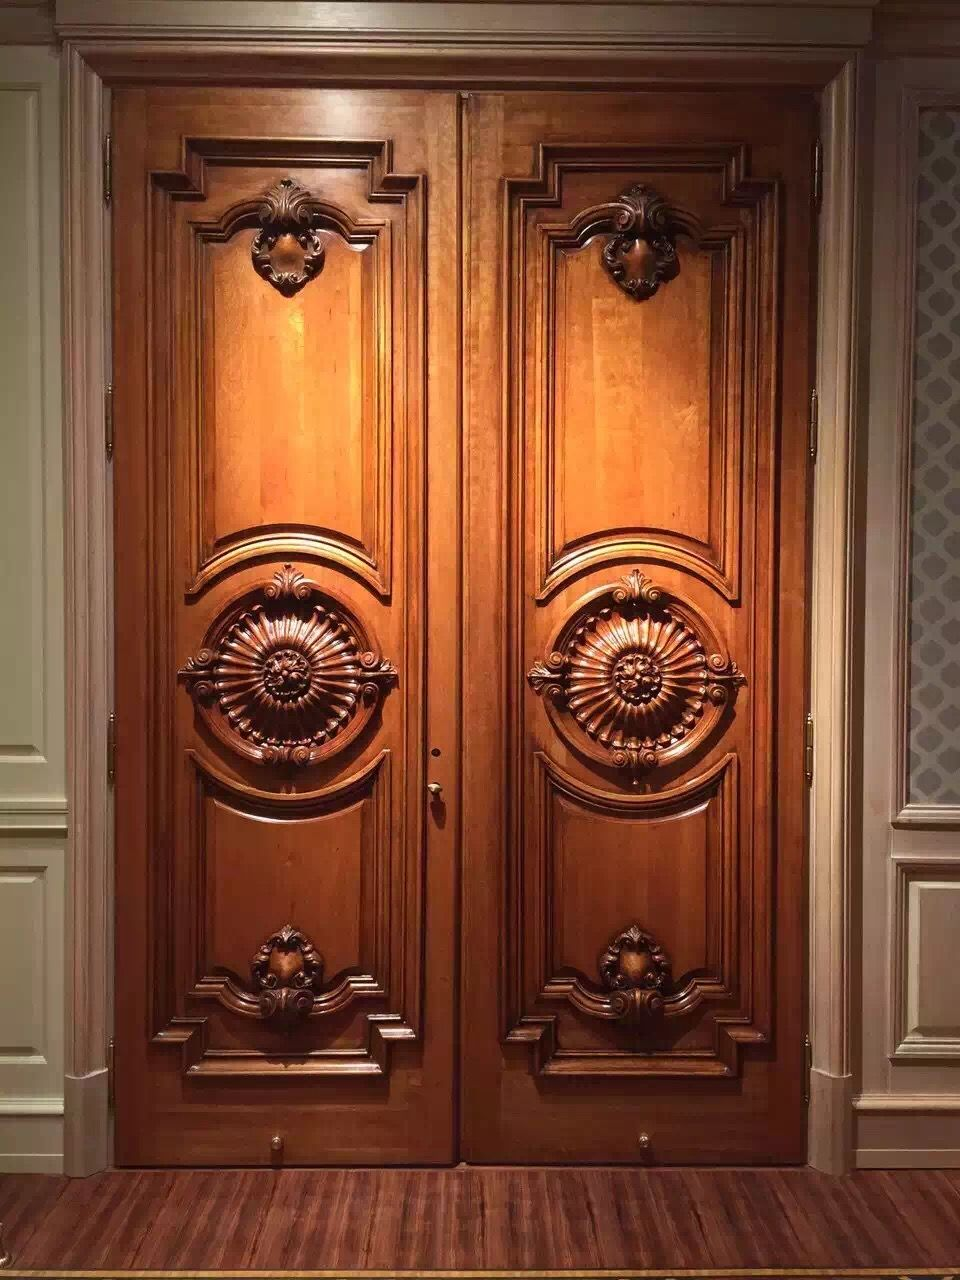 door furniture design. Indian Furniture, Main Door, Entrance Doors, Iron Antique Wooden Door Design, Interior Handles Furniture Design M